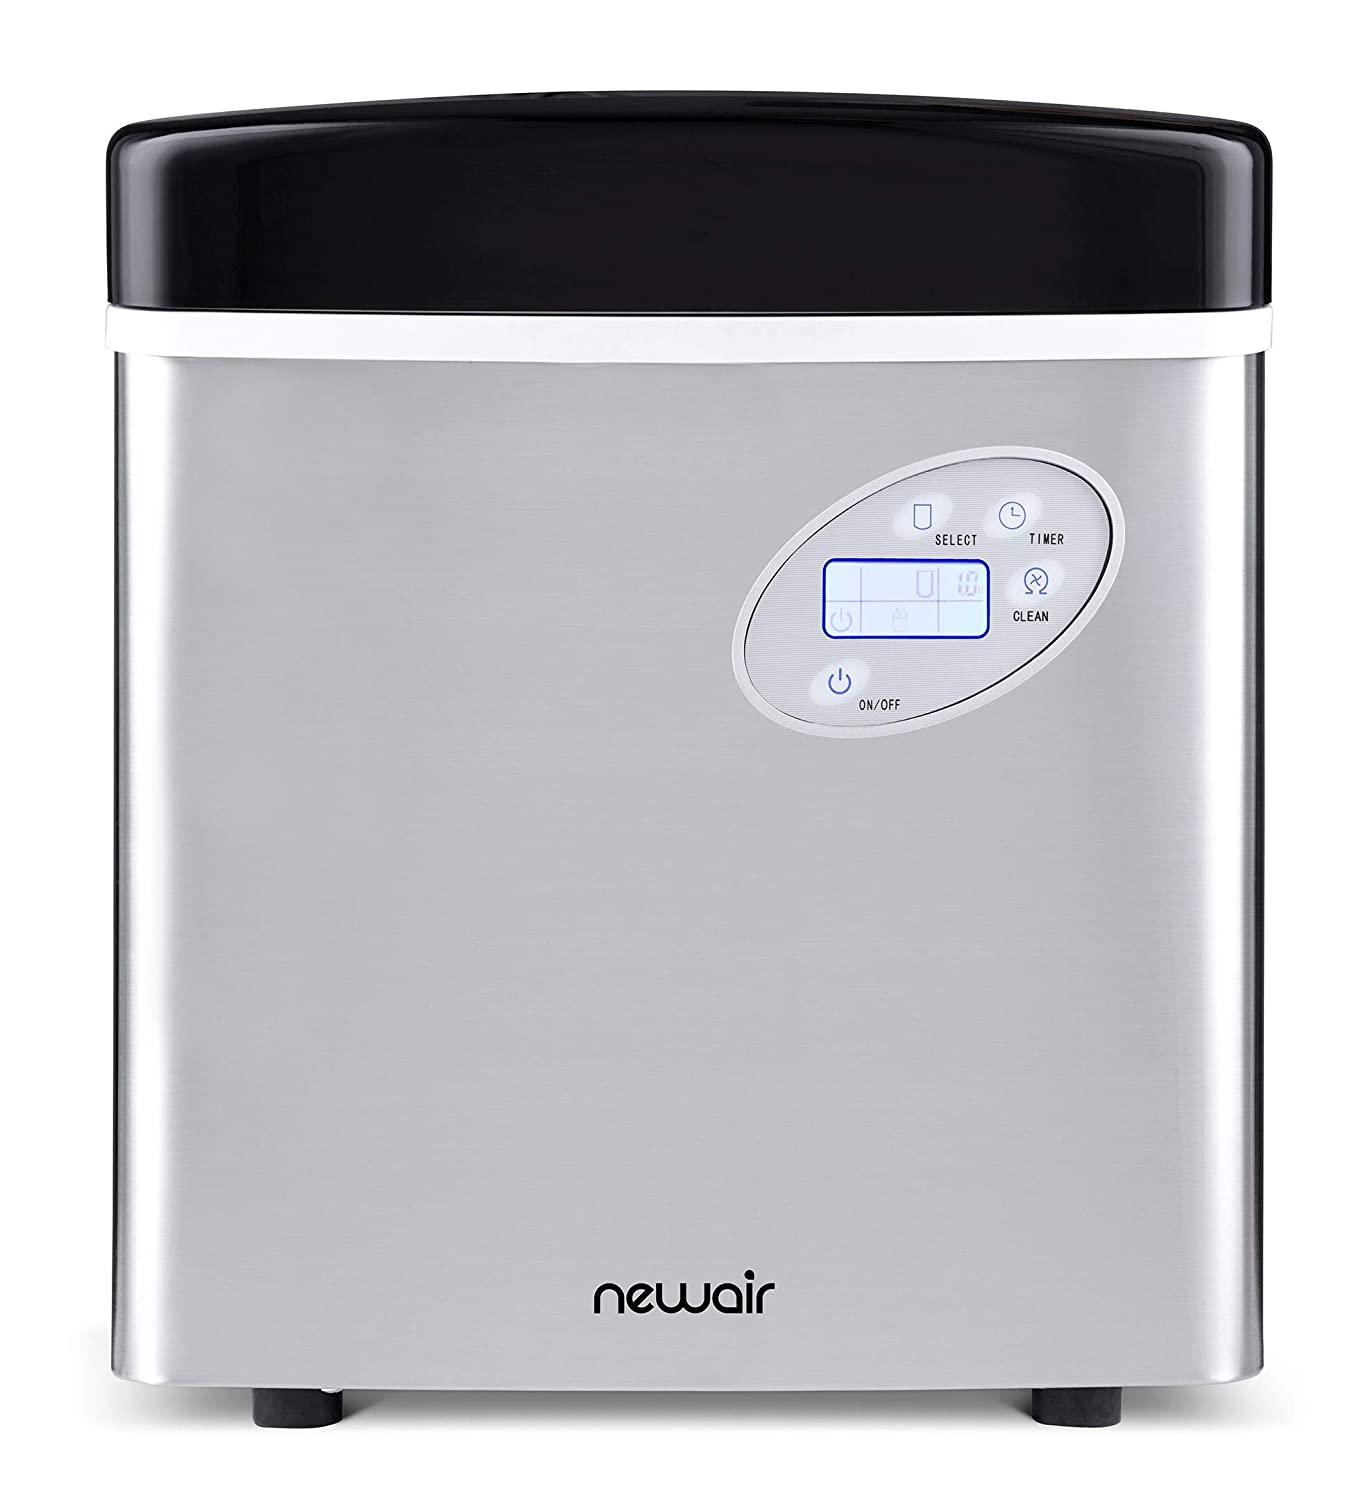 Top 10 Best Portable Ice Makers (2020 Reviews & Buying Guide) 6